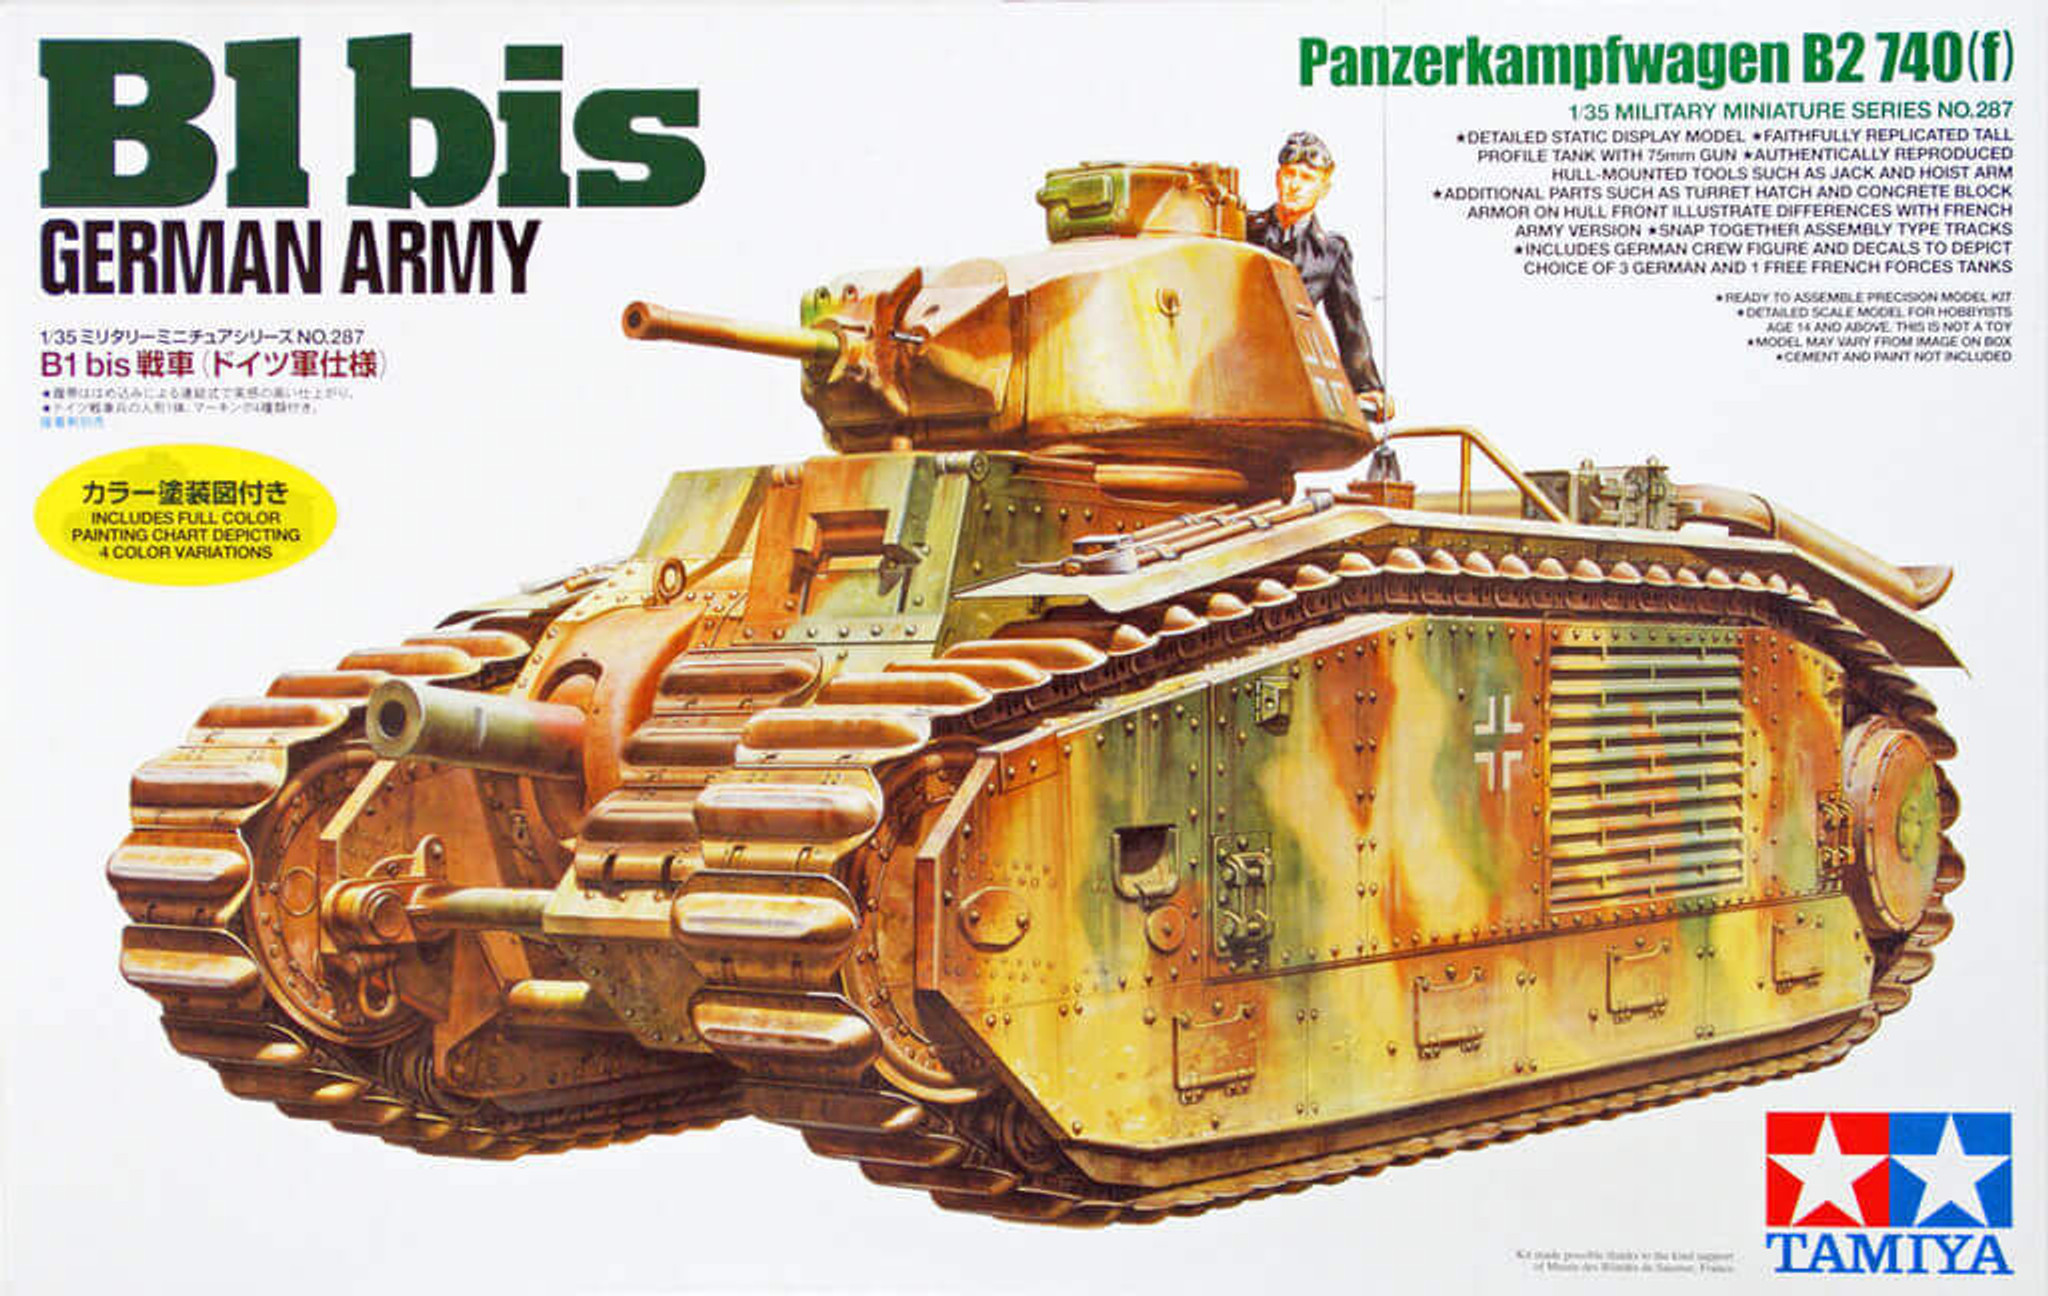 Tamiya 35287 German Army B1 bis 1/35 Scale Kit